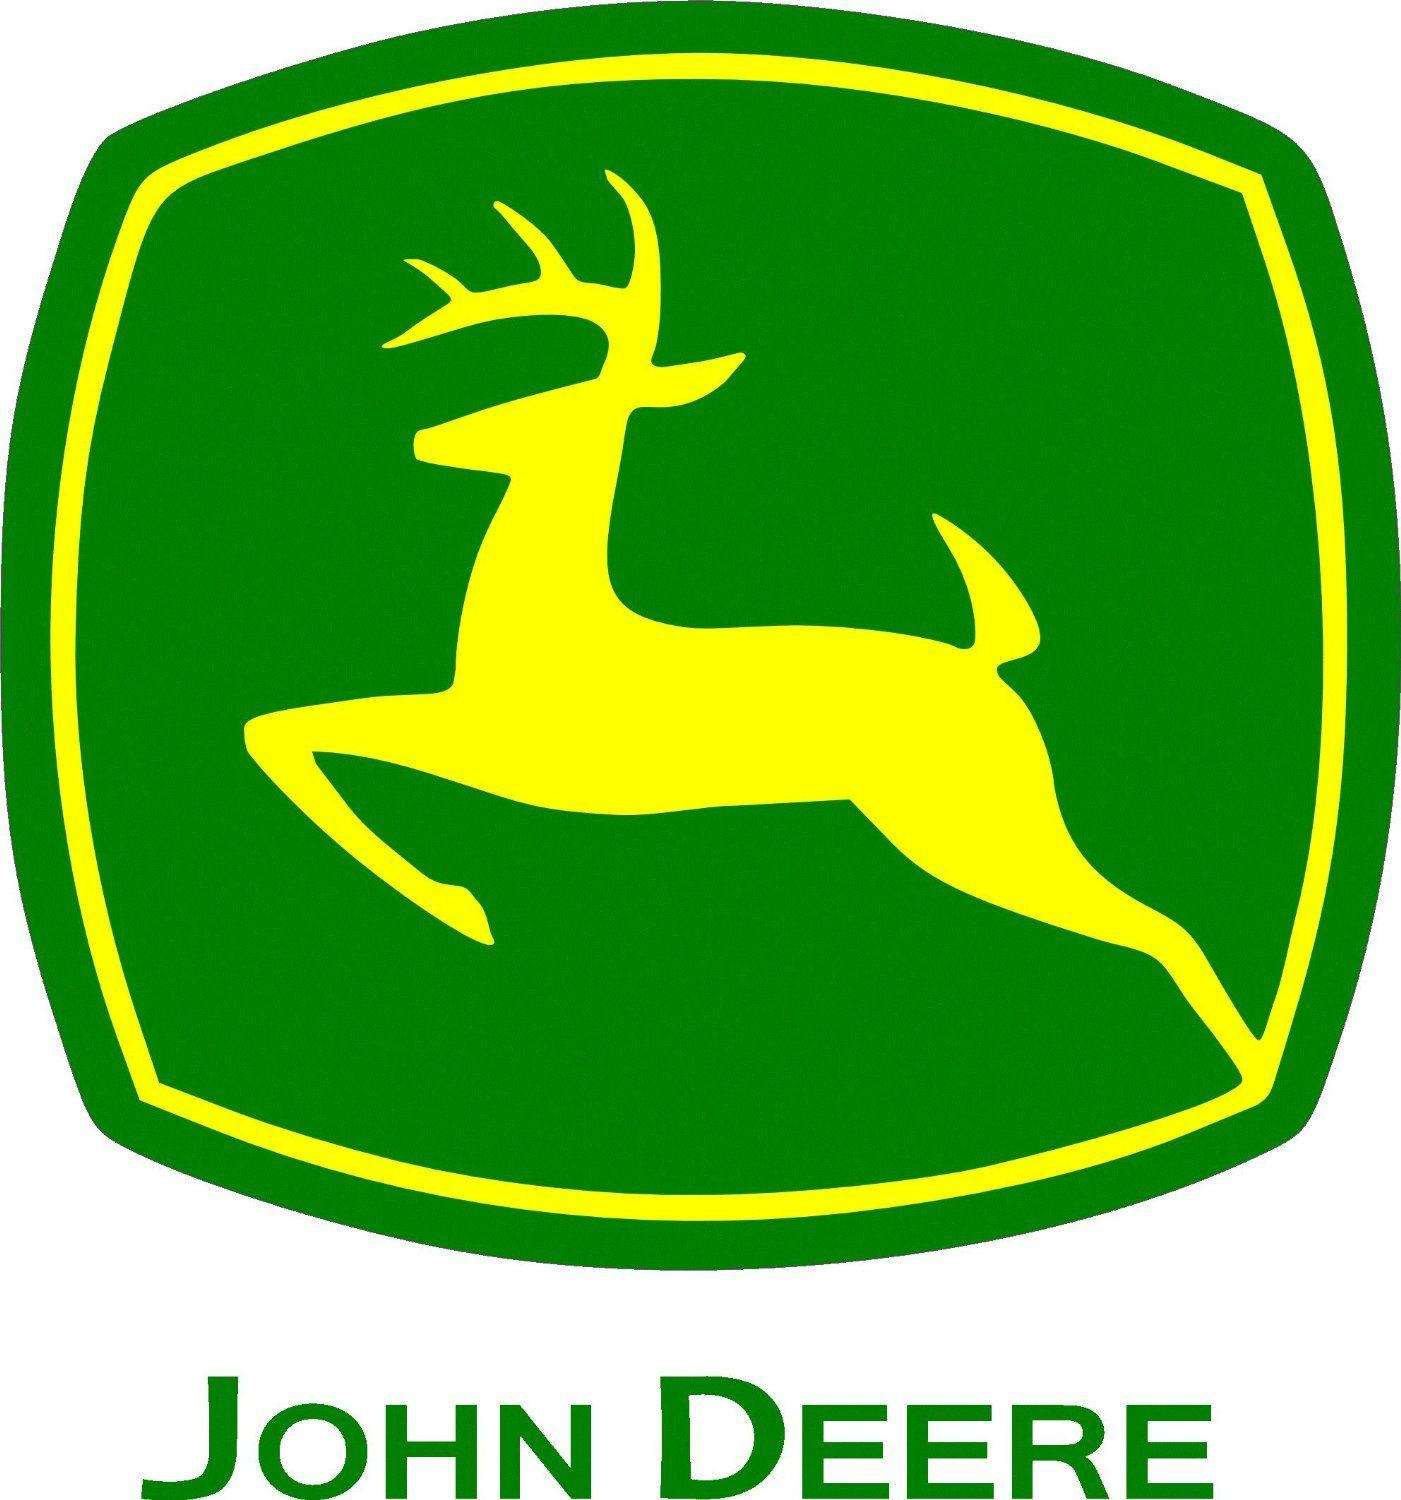 Free download John Deere Logo Wallpapers 2016 [1401x1500.